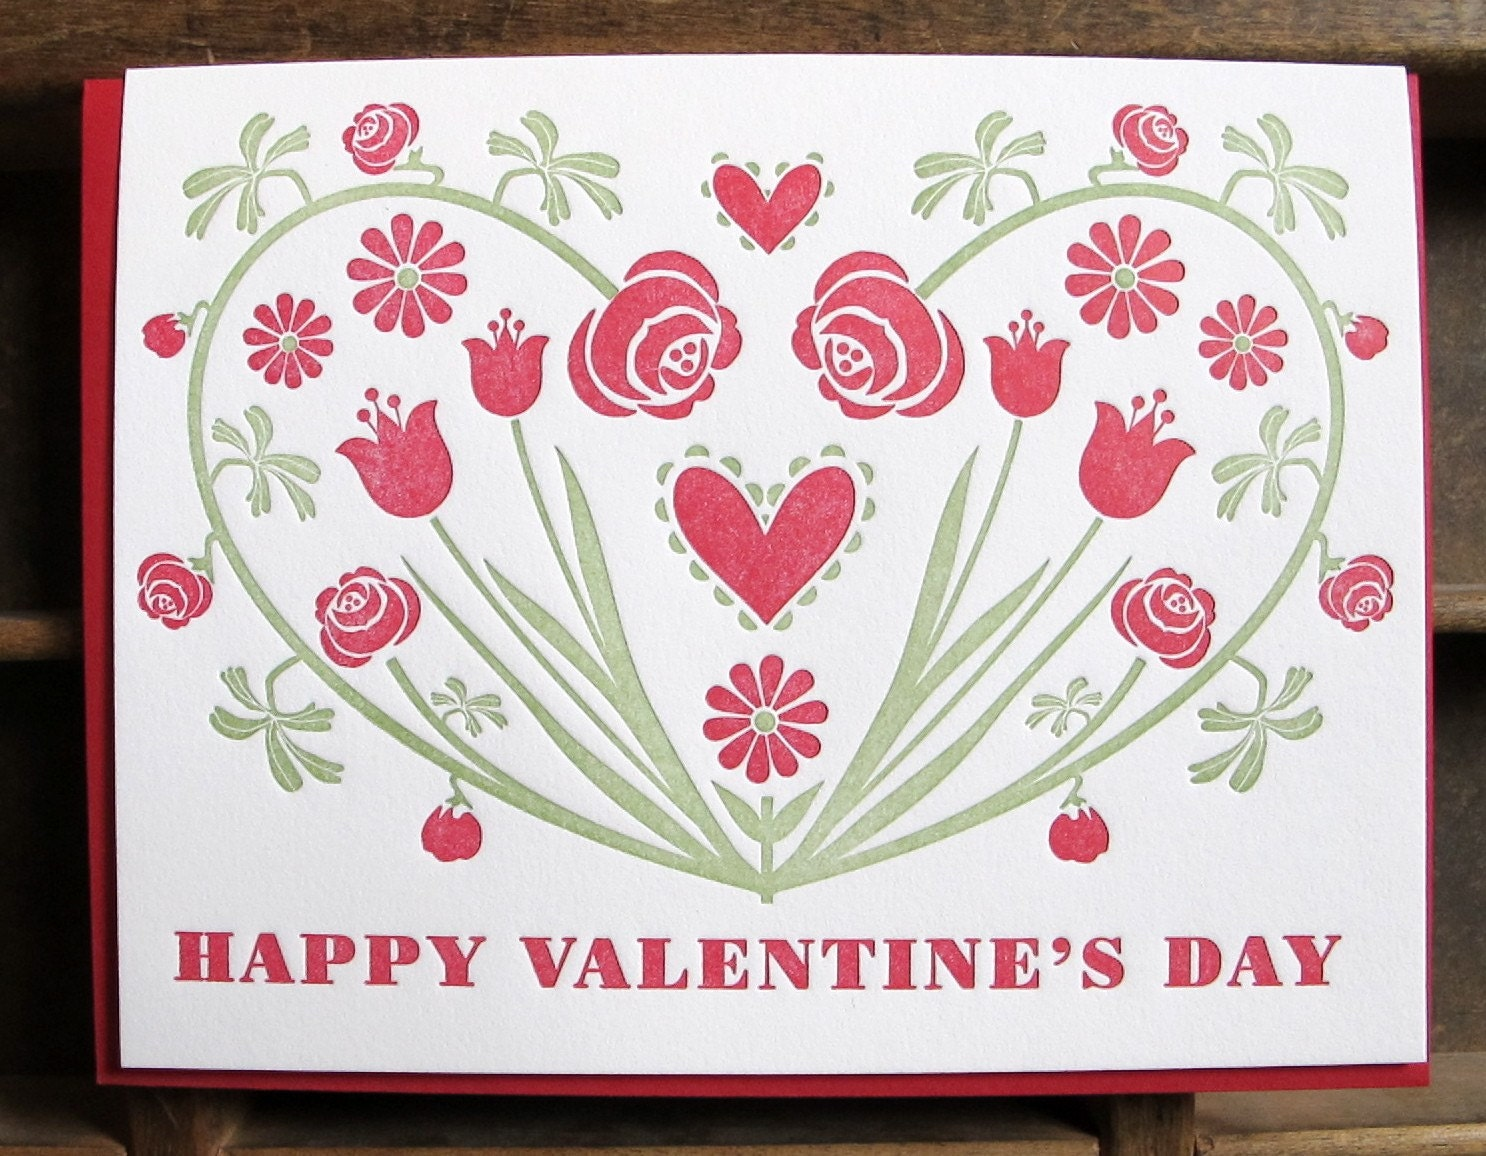 http://www.etsy.com/view_listing.php?listing_id=37908119&ref=sr_gallery_14&&ga_search_query=valentines+card+letterpress&ga_search_type=handmade&ga_page=16&order=&includes[]=tags&includes[]=title